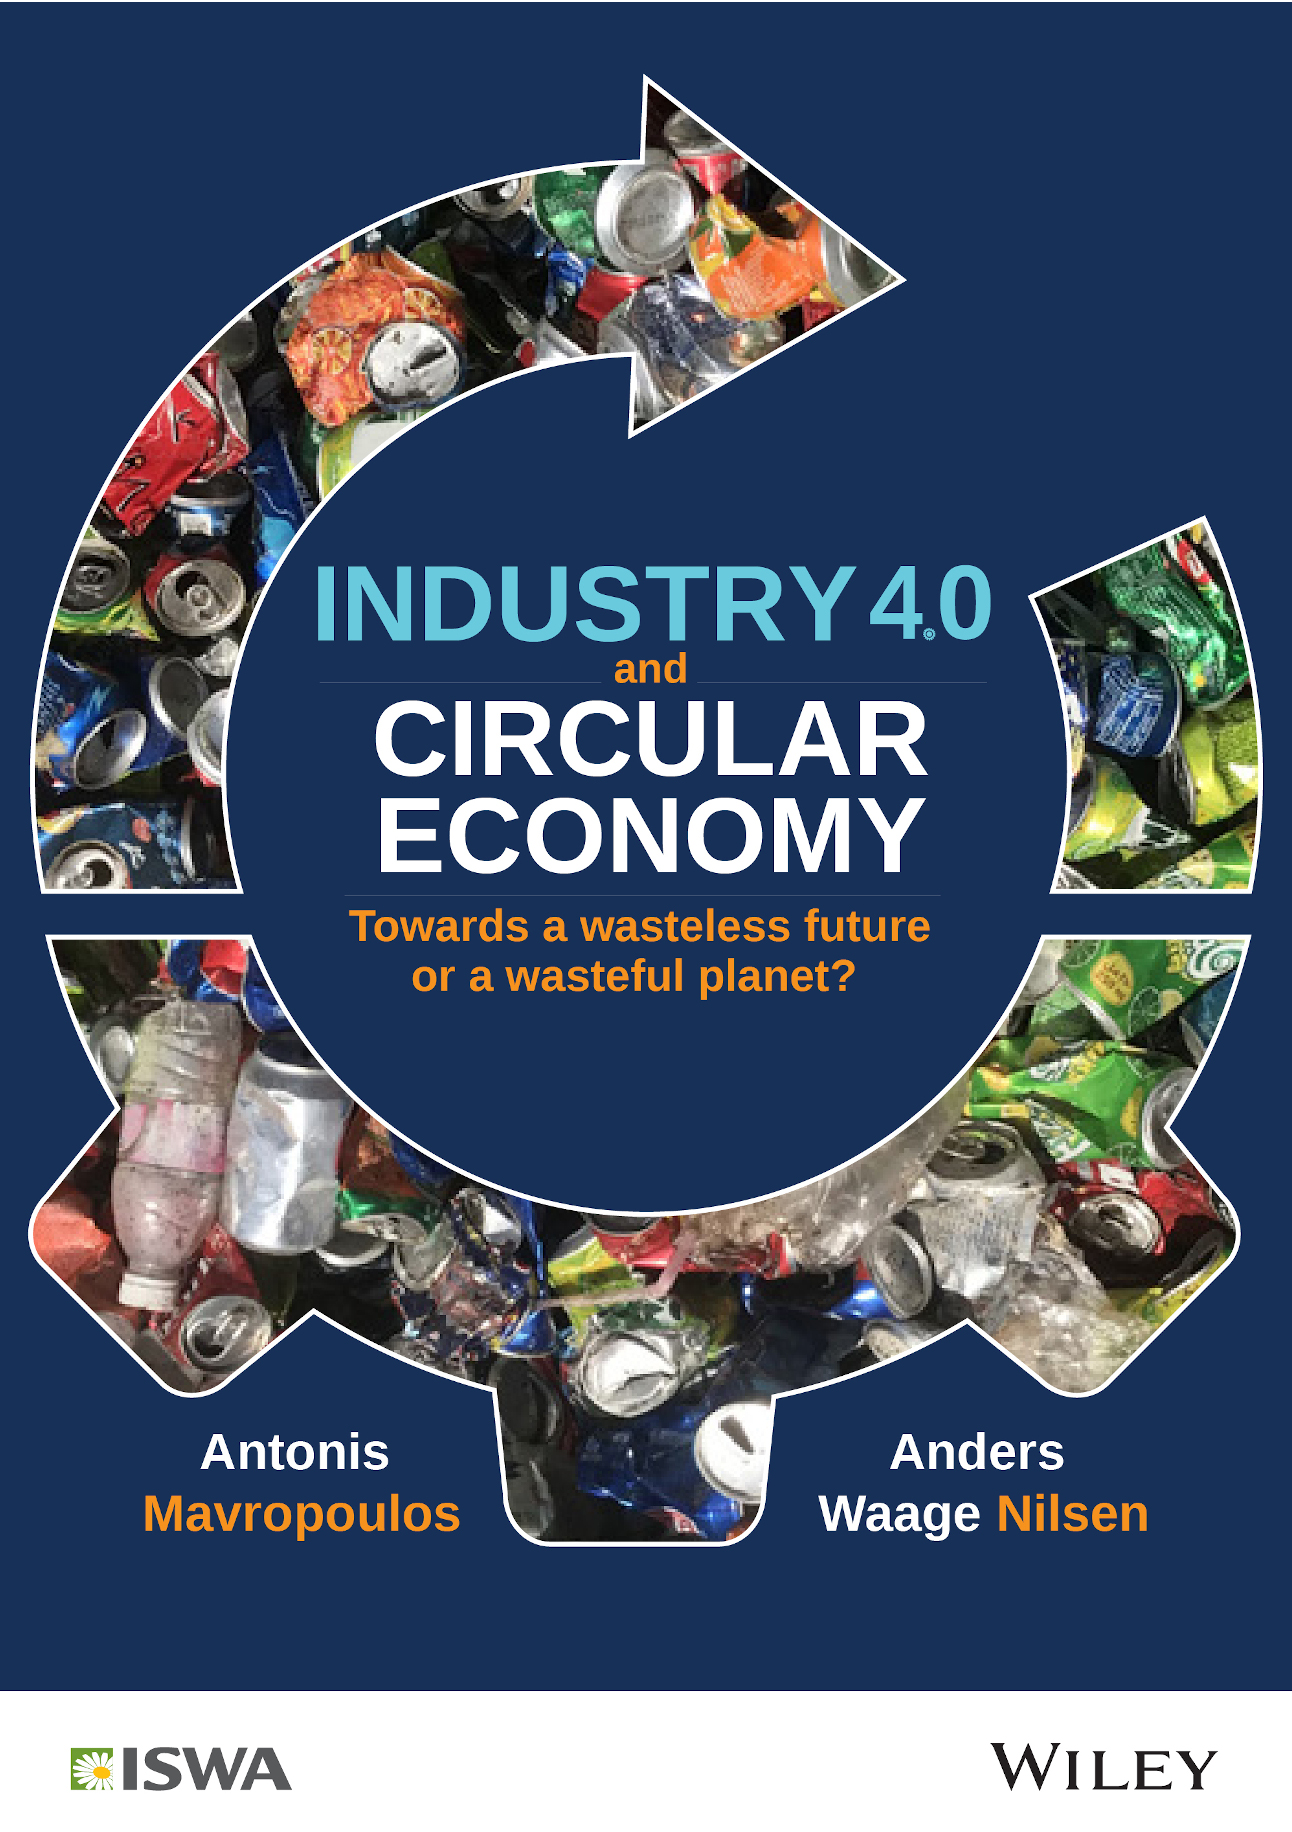 INDUSTRY 4.0 AND CIRCULAR ECONOMY